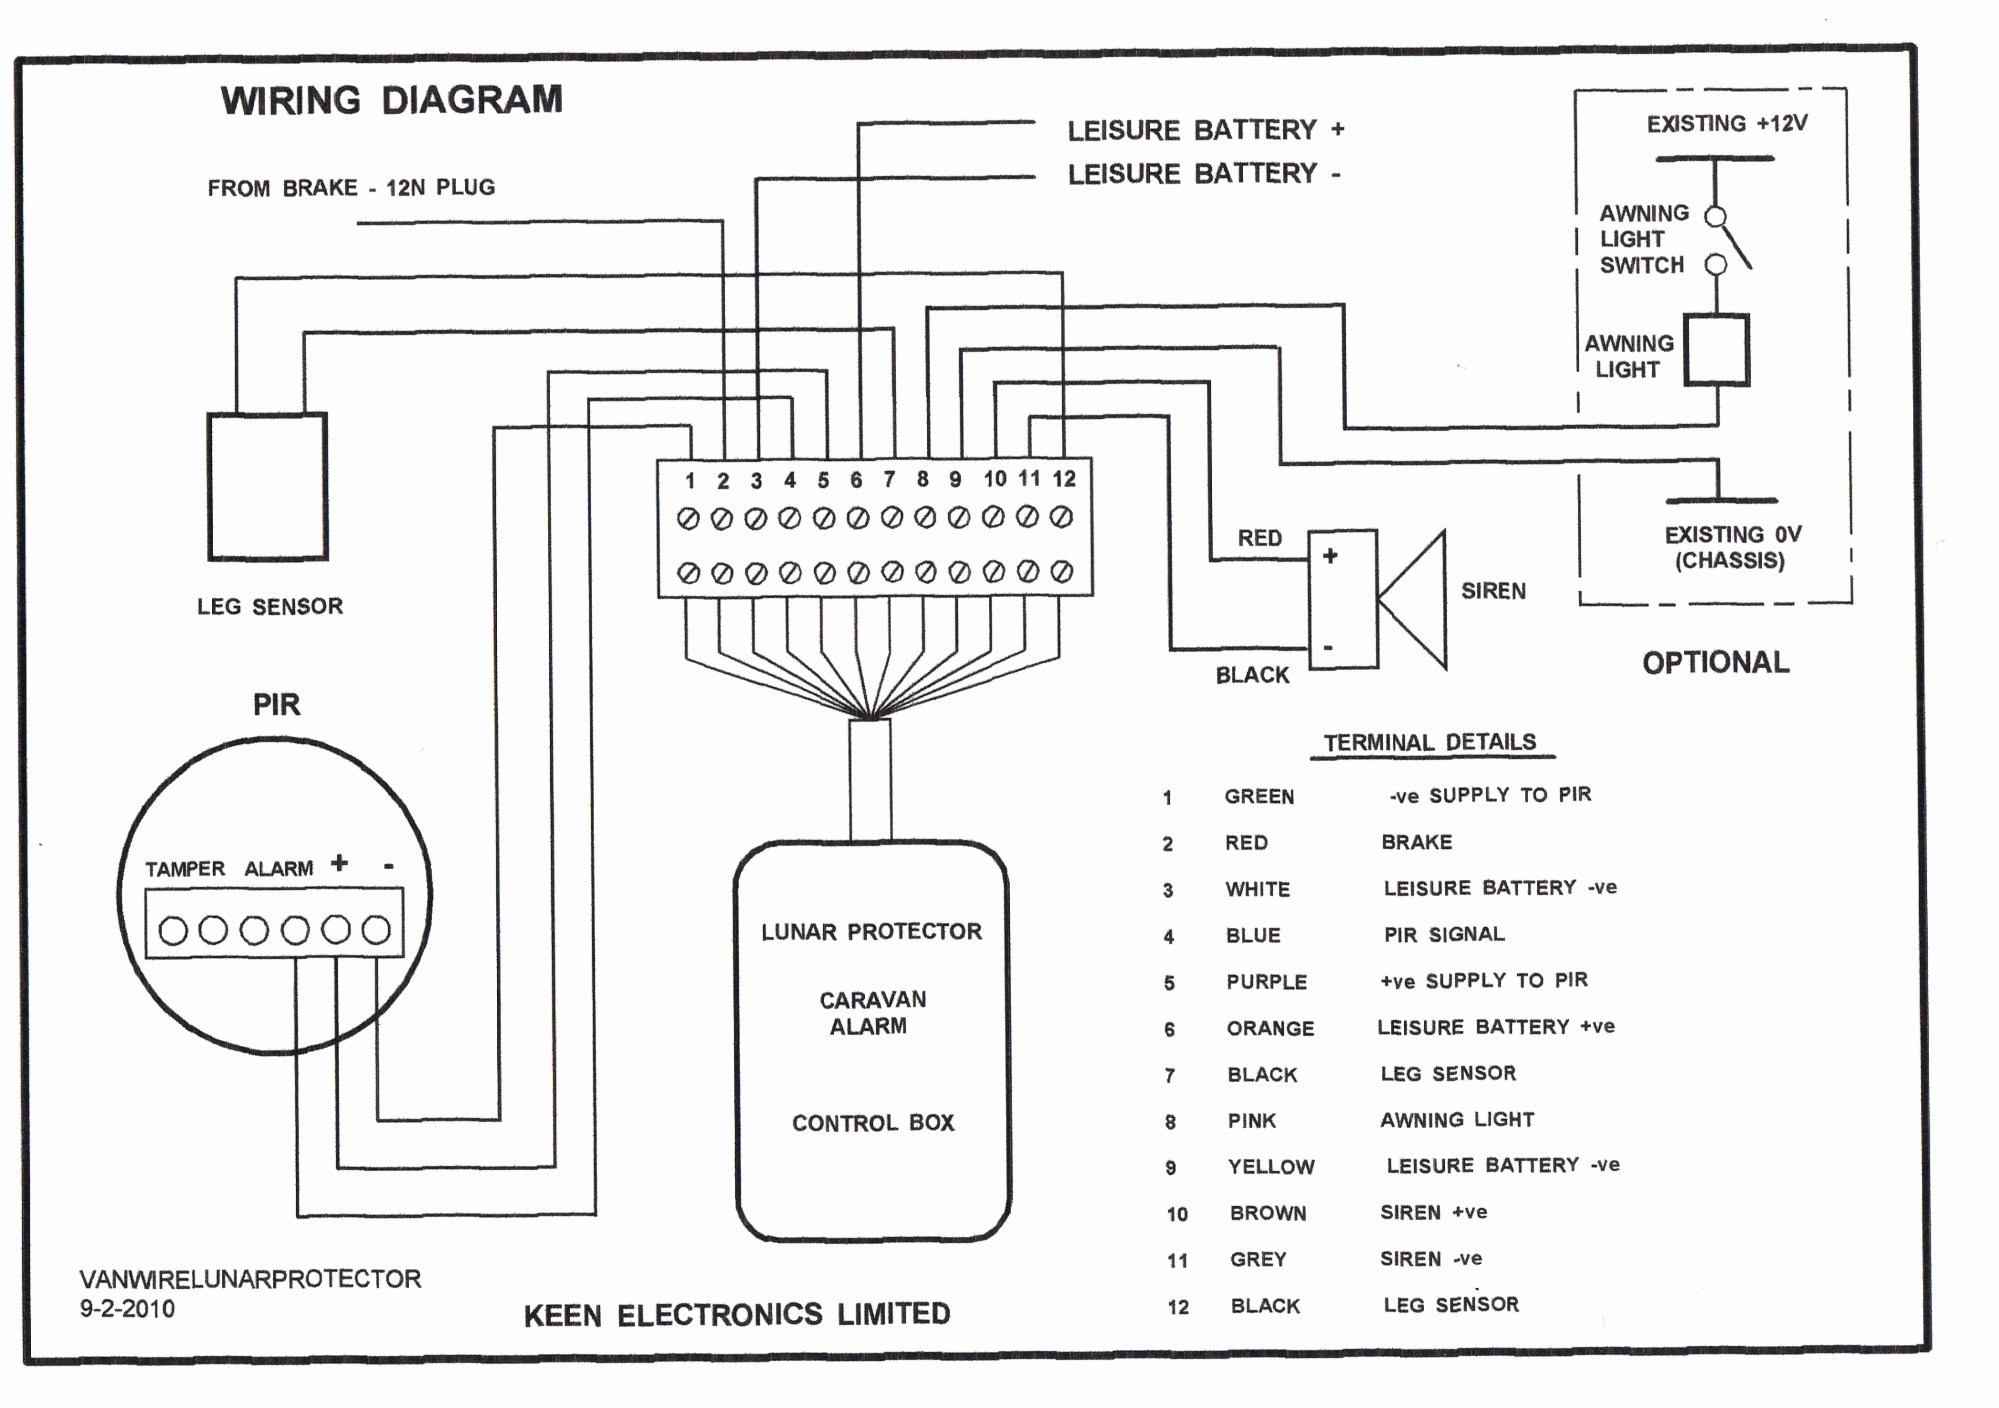 hight resolution of samsung security camera wiring diagram free wiring diagramsamsung security camera wiring diagram wiring diagram for home